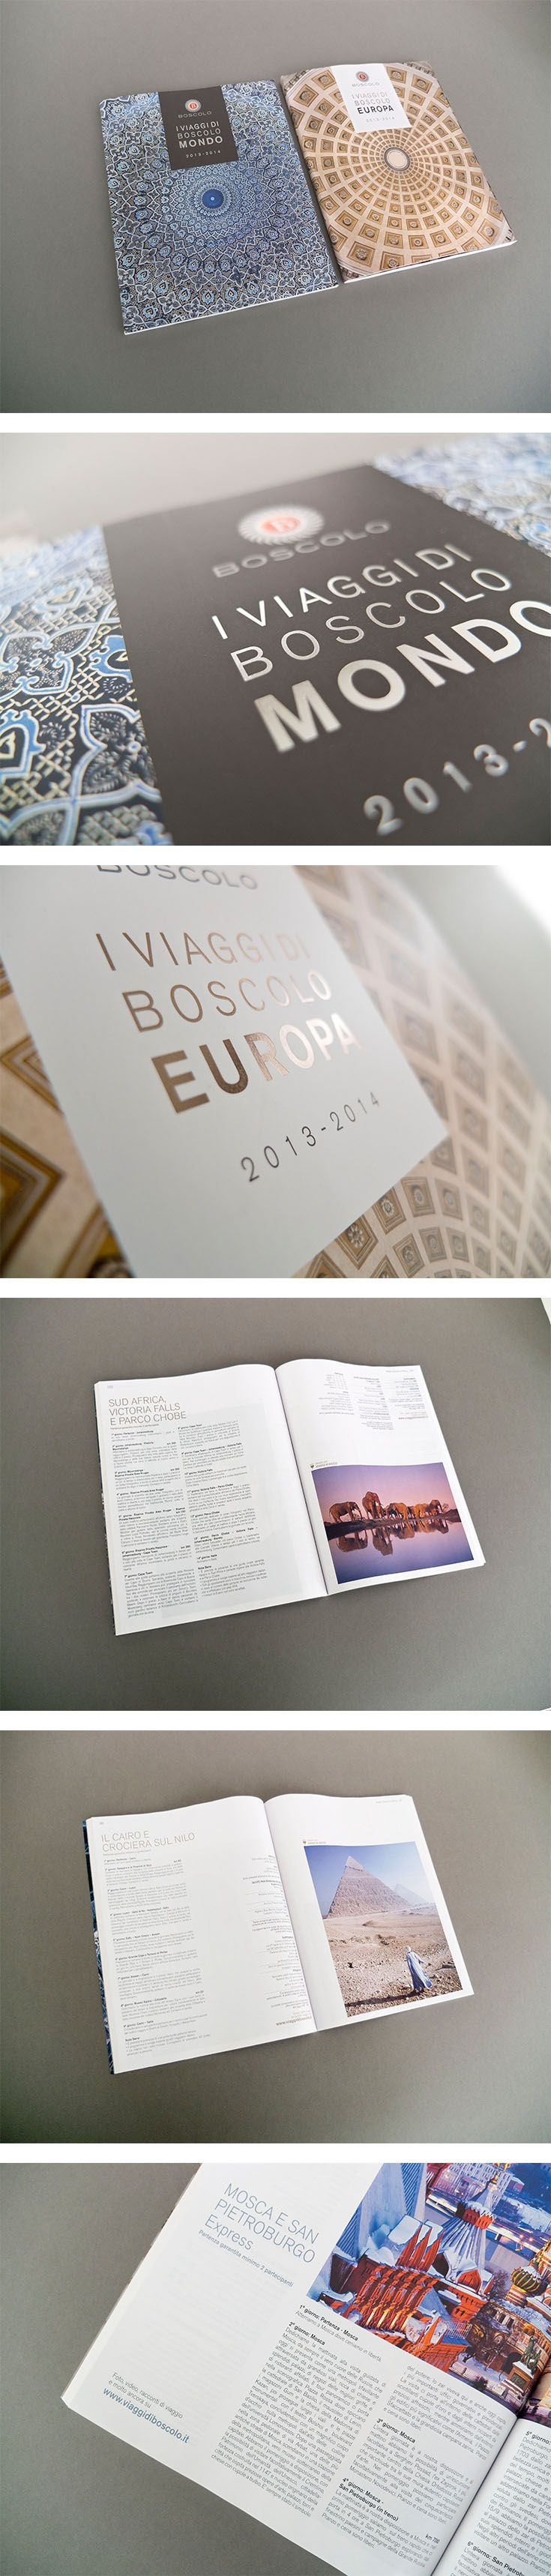 Cataloghi Boscolo, un progetto #effADV - Boscolo #printing, effADV project - #catalogue #catalogo